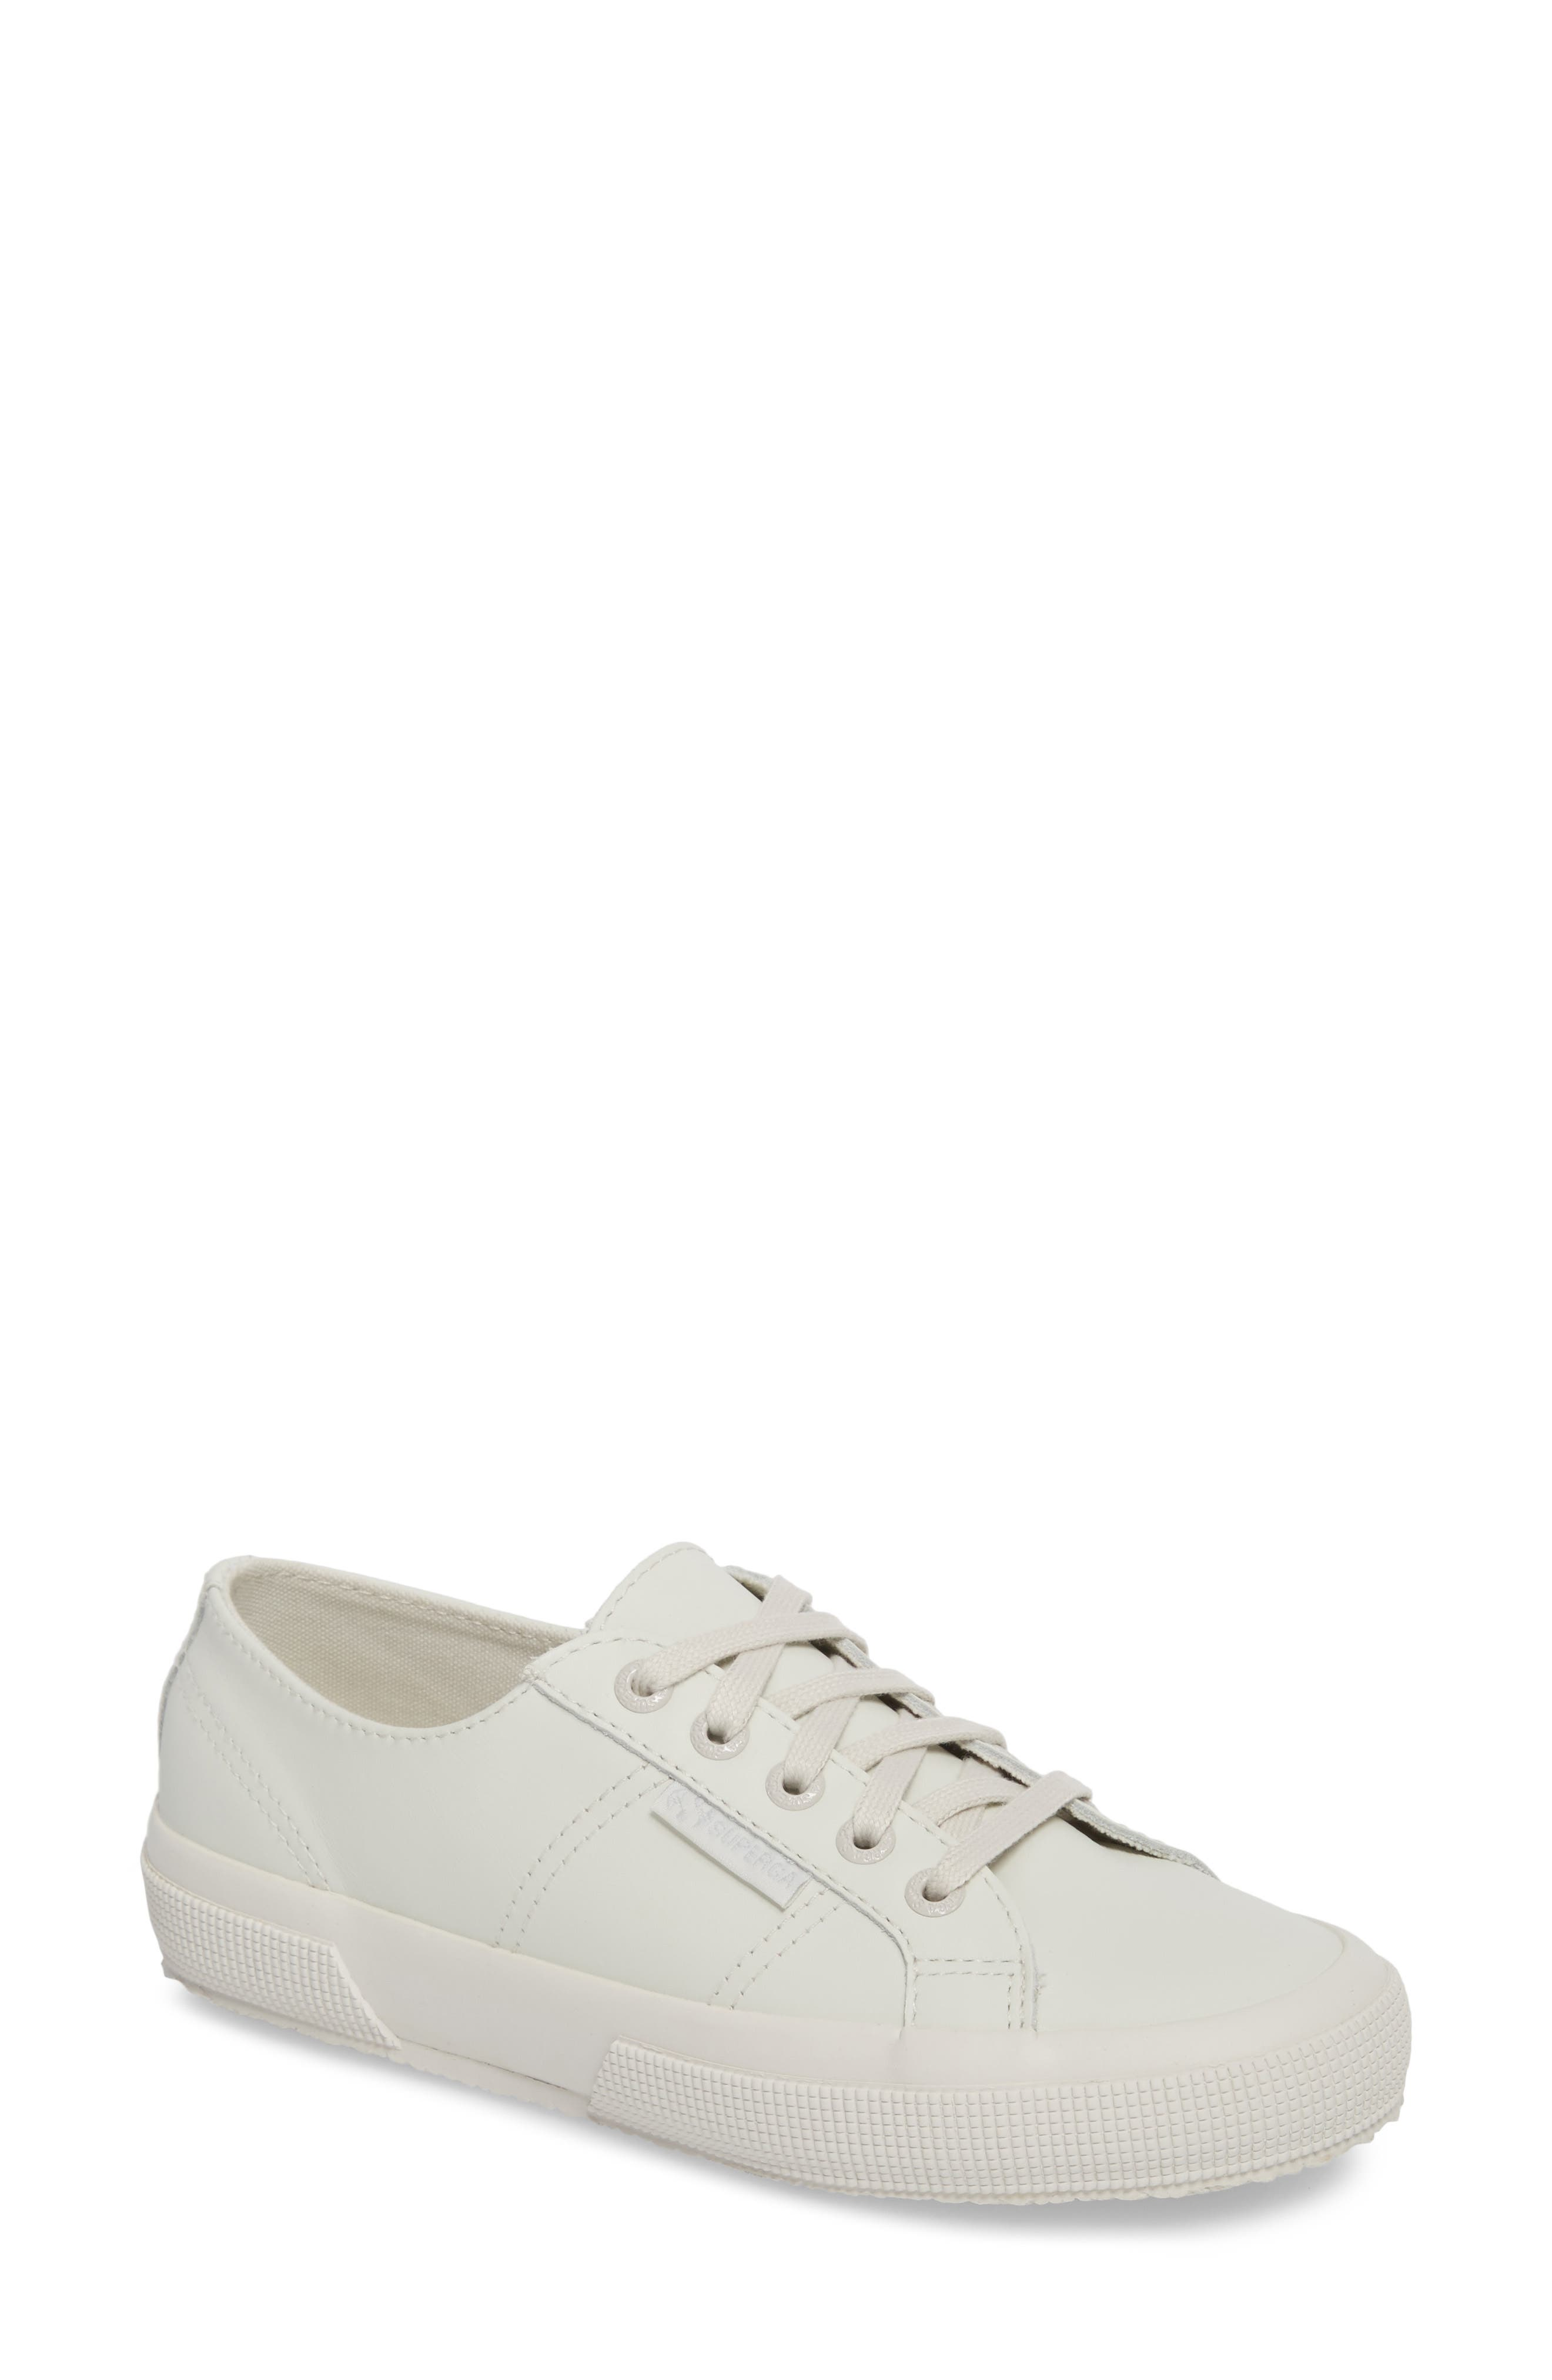 '2750' Sneaker,                         Main,                         color, Ice